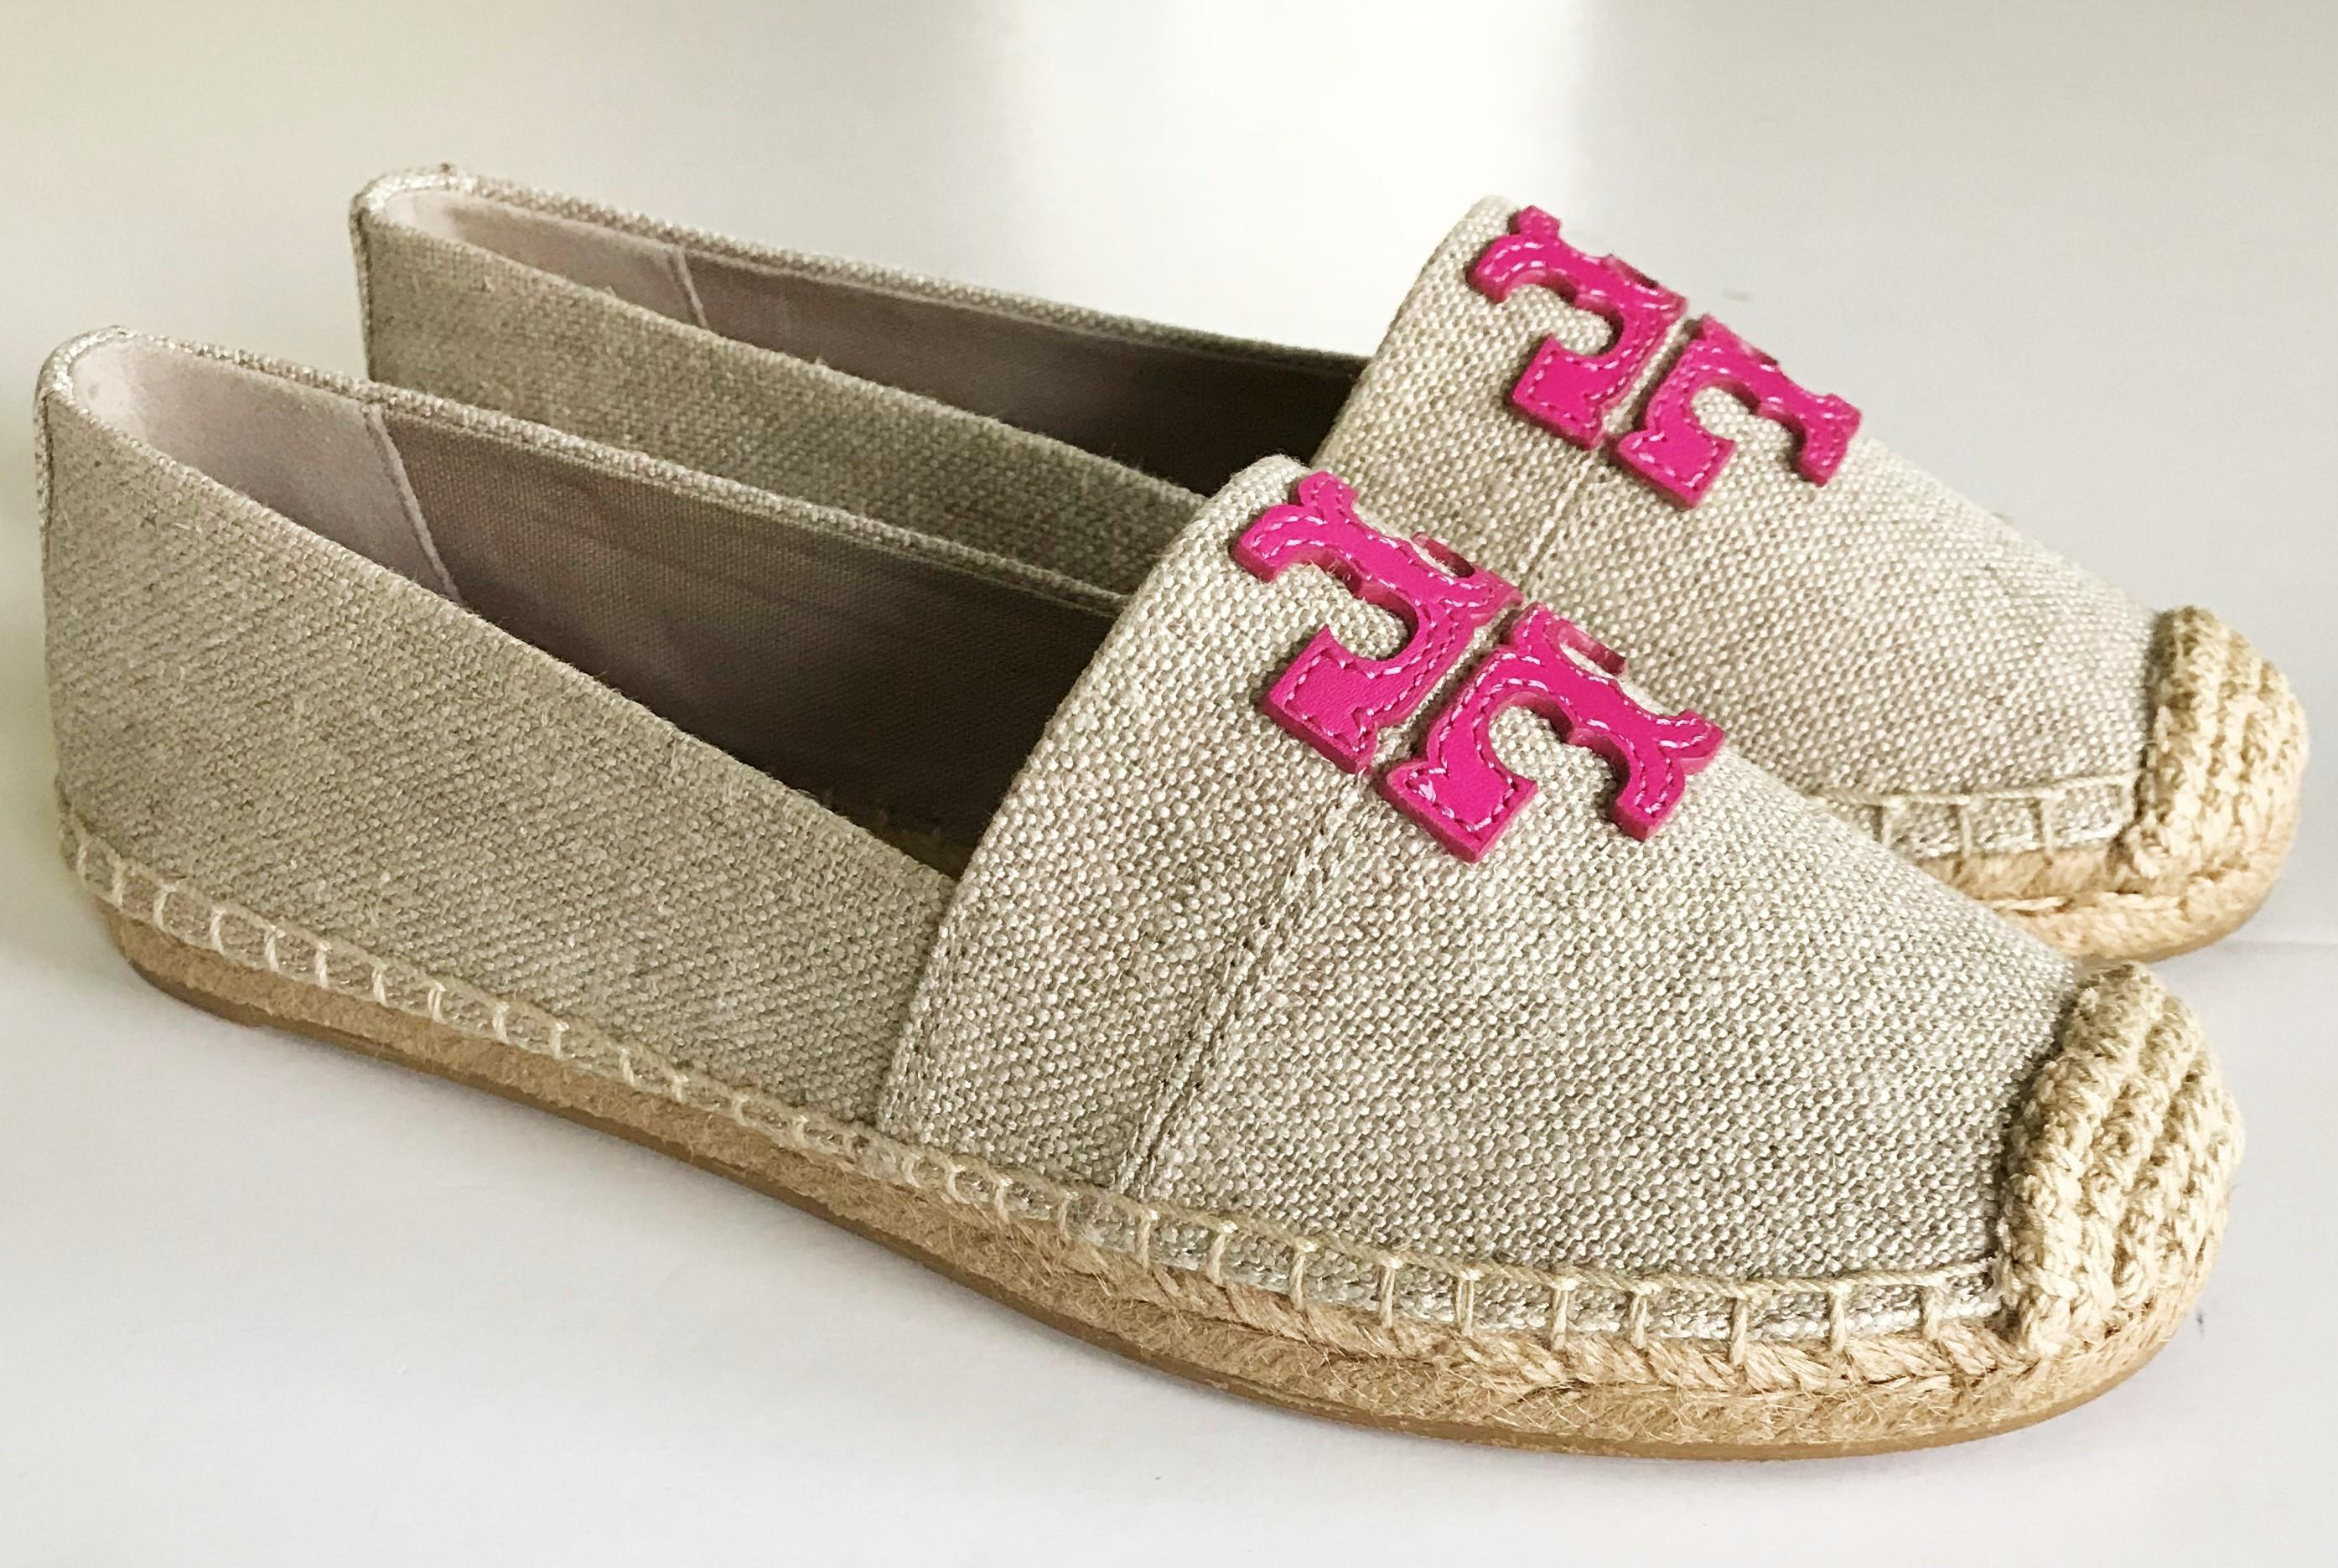 cc0dda22d ... Tory Burch Gray Pink Weston Canvas Canvas Canvas Espadrilles Flats Size  US 8.5 Regular (M ...